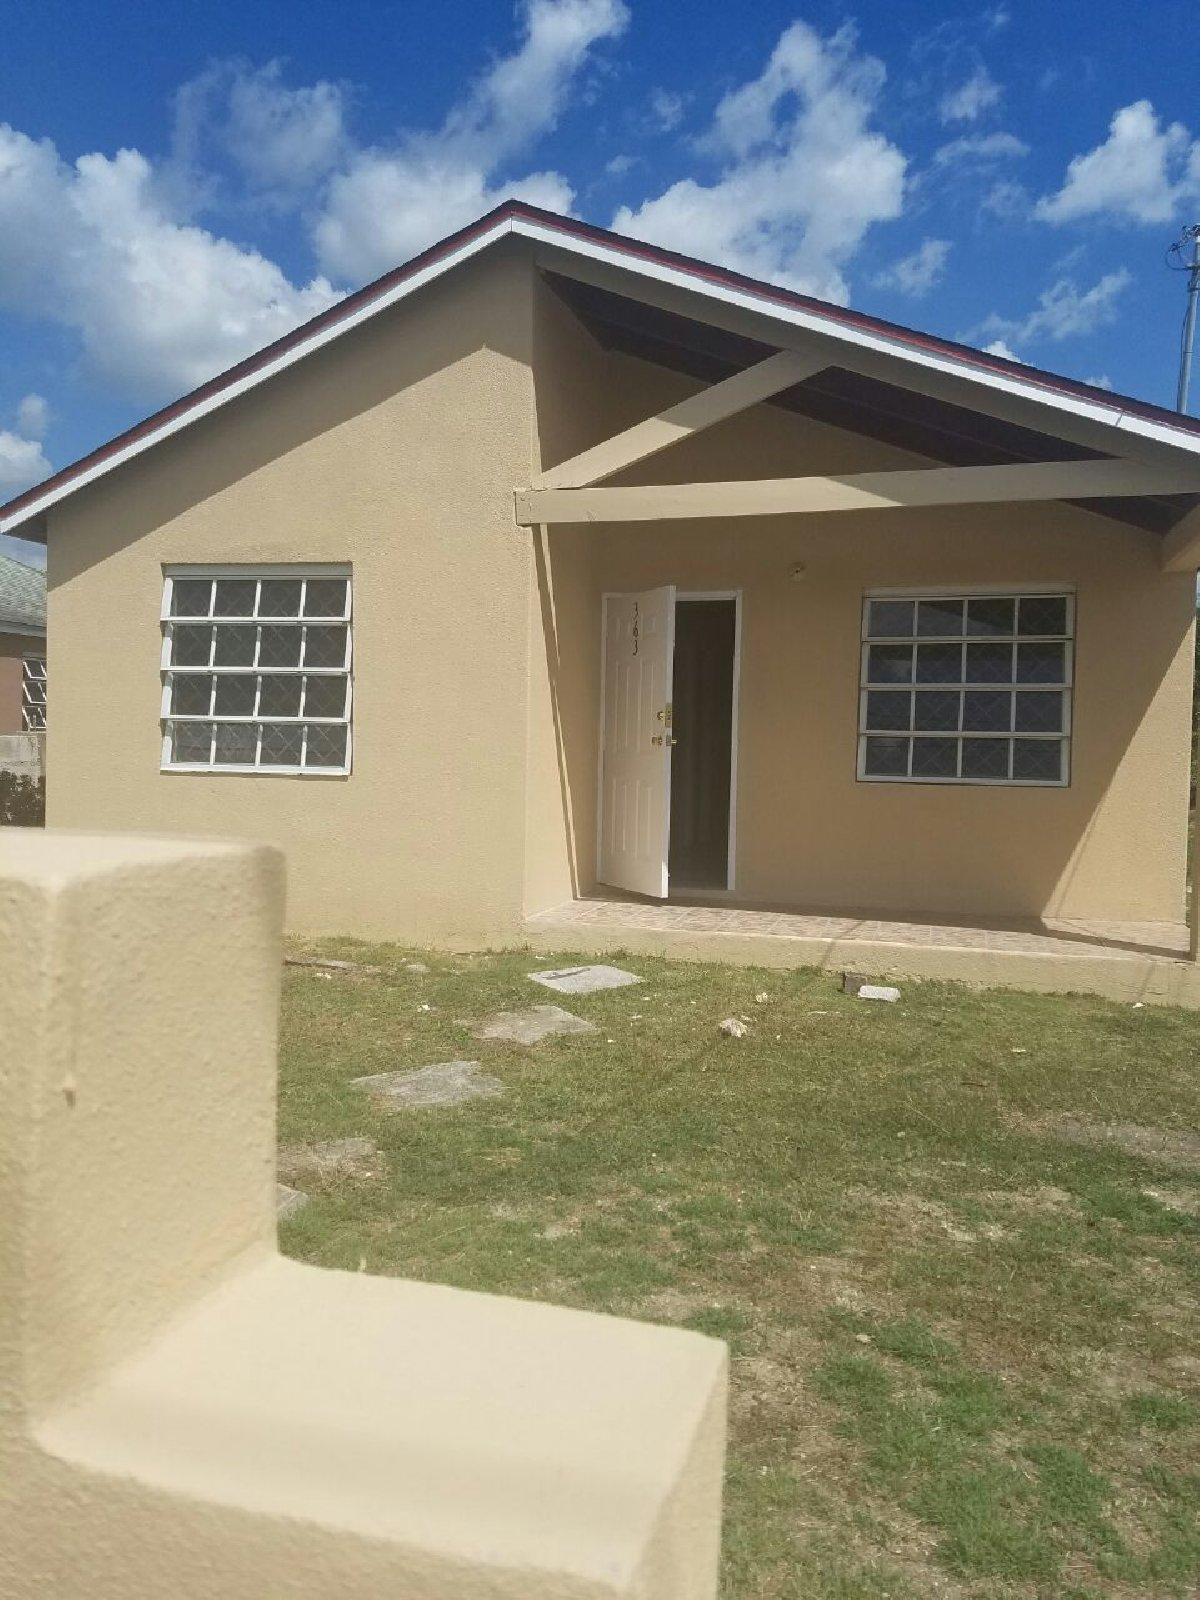 Best 2 Bedroom 1 Bathroom House For Rent In Whitewater Meadows With Pictures Original 1024 x 768